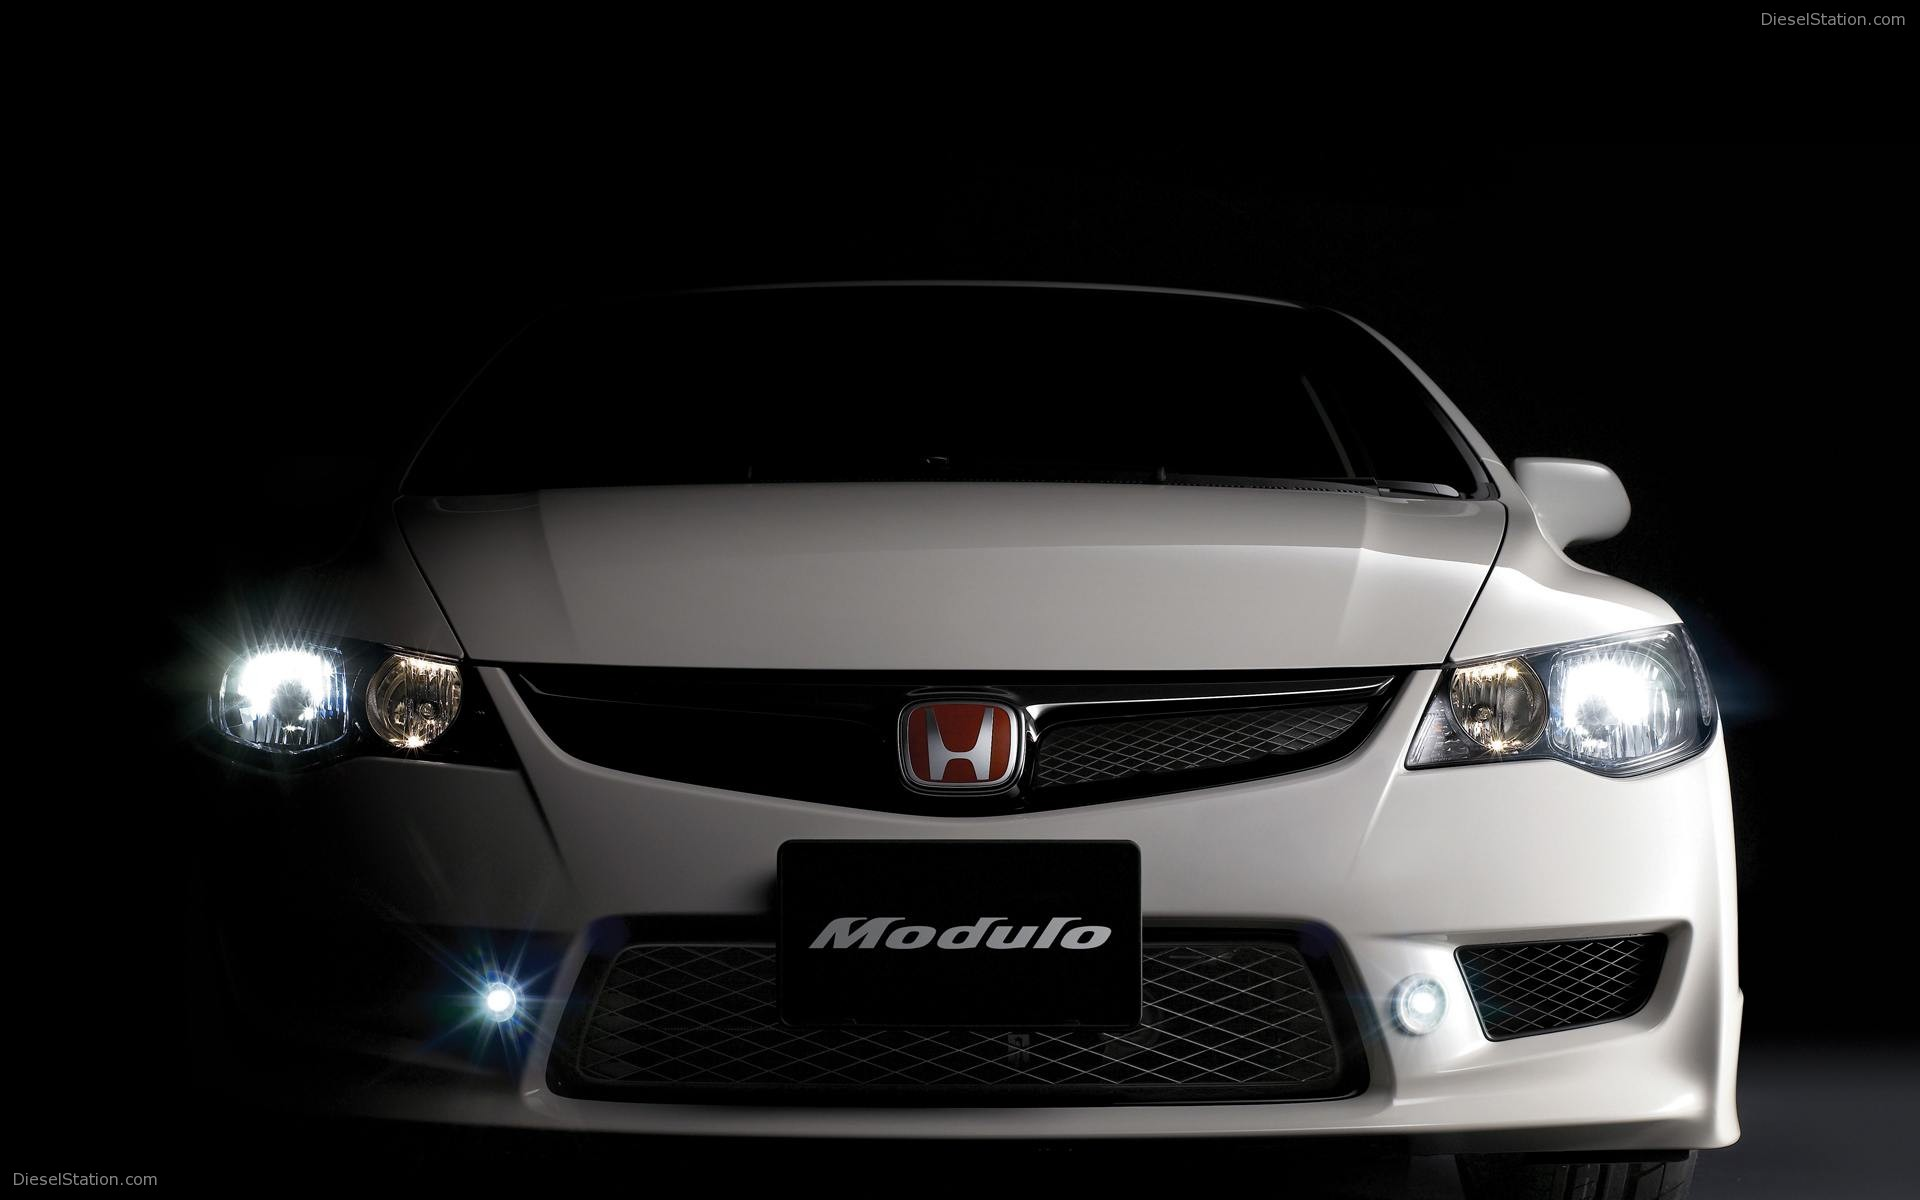 Honda Civic Type R Wallpaper 6268 Hd Wallpapers in Cars   Imagescicom 1920x1200